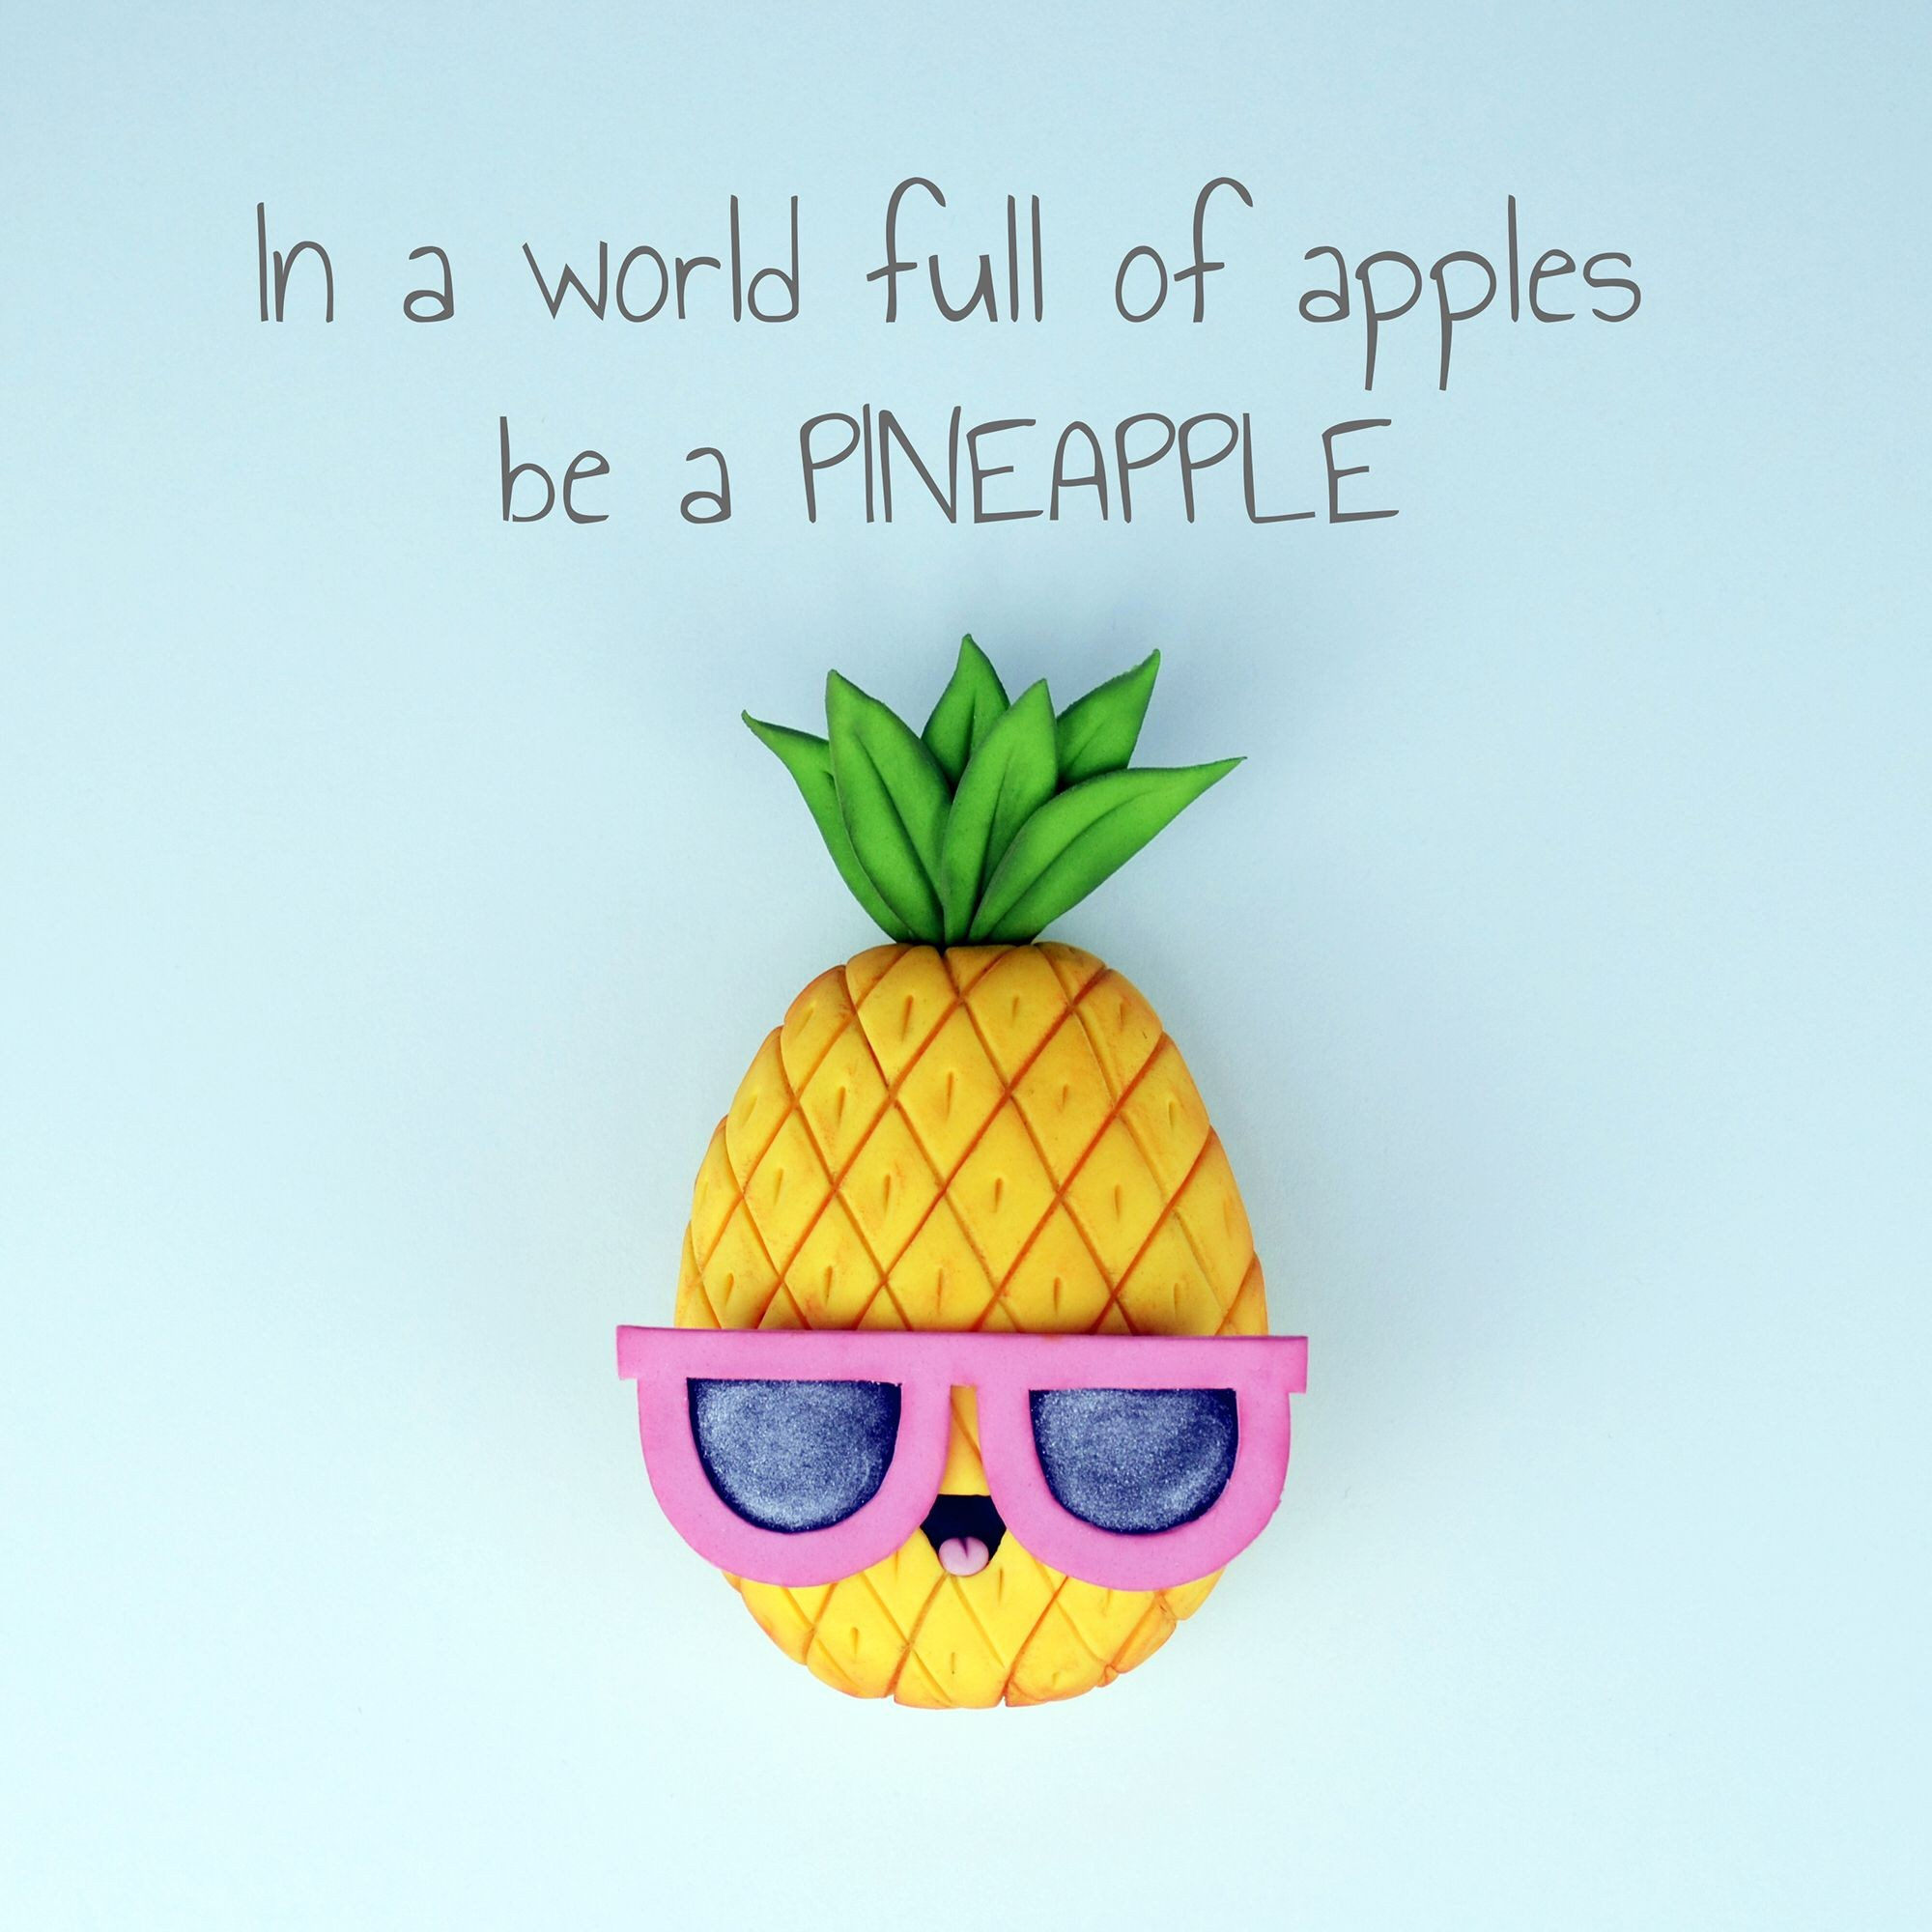 Rose Gold Pineapple Wallpaper Pineapple Inspirational Quotes 44855 Hd Wallpaper Backgrounds Download